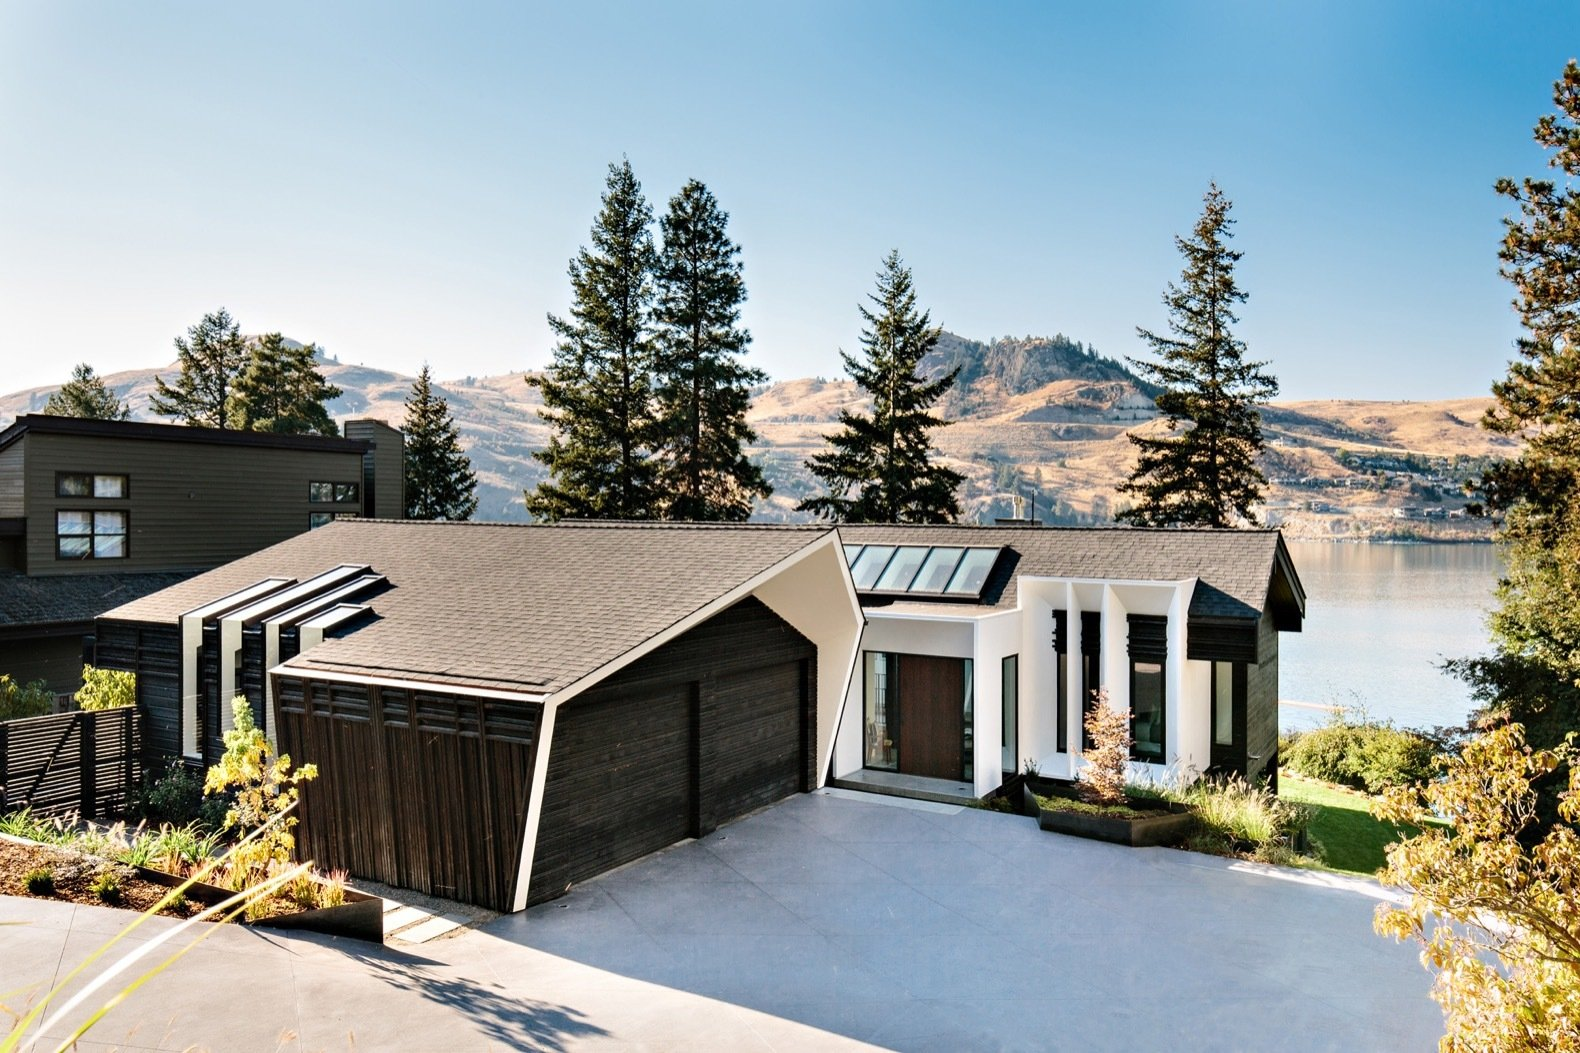 BLDG Workshop Breathes New Life Into a Lakeside Home and Outdoor Hut